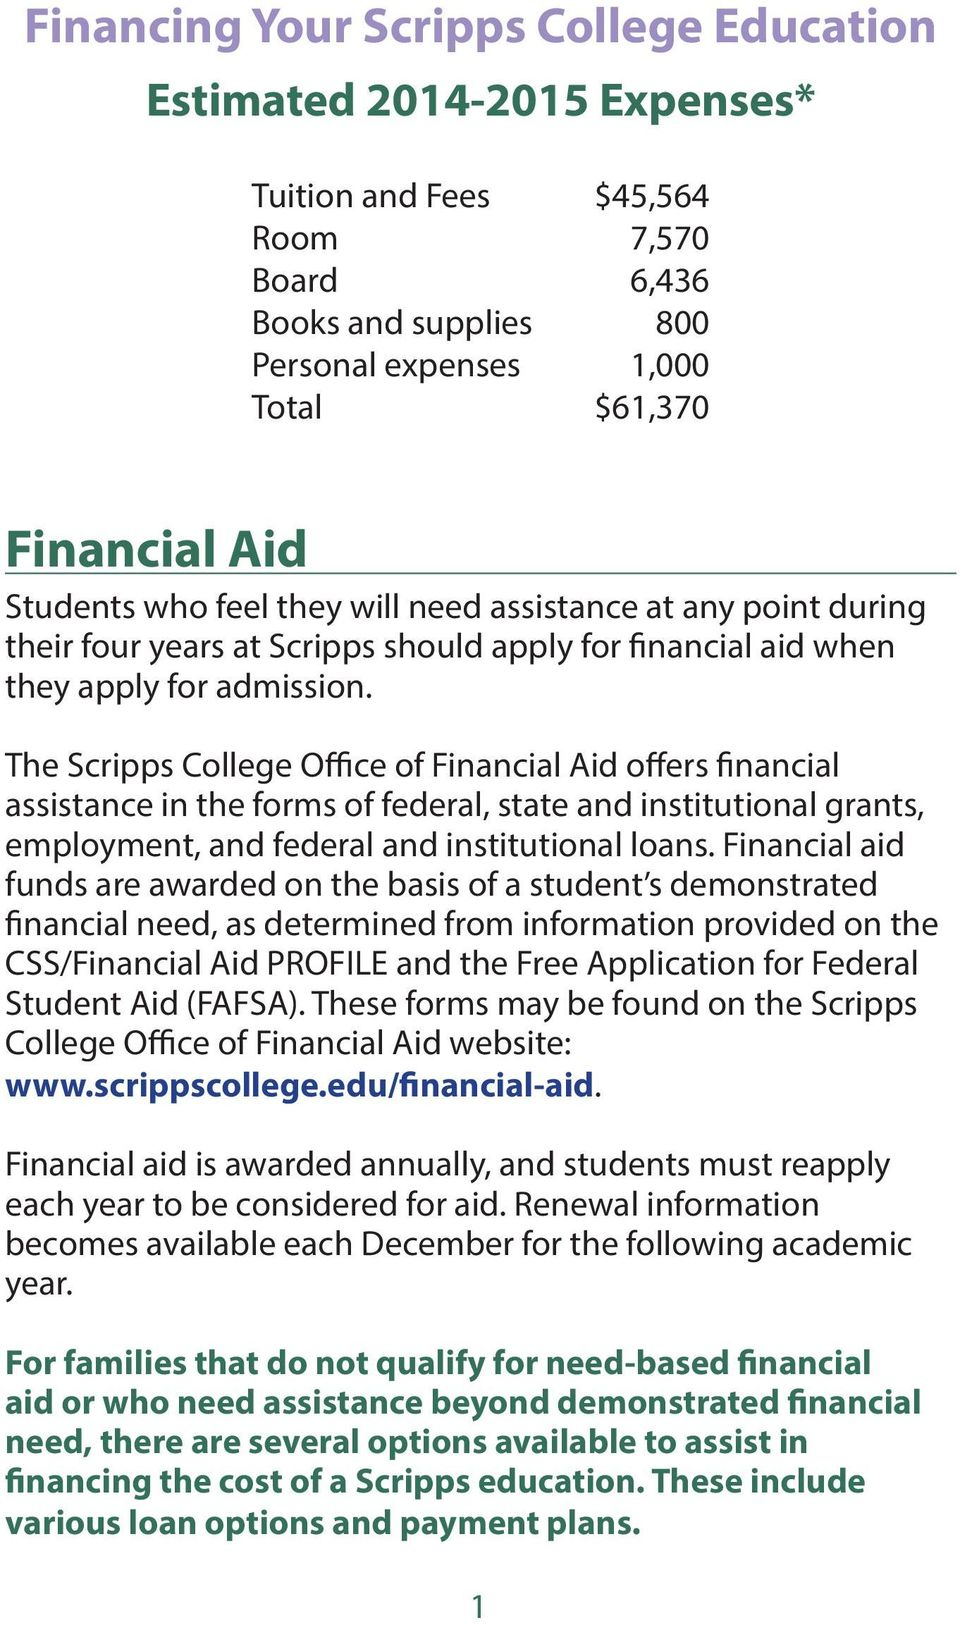 The Scripps College Office of Financial Aid offers financial assistance in the forms of federal, state and institutional grants, employment, and federal and institutional loans.